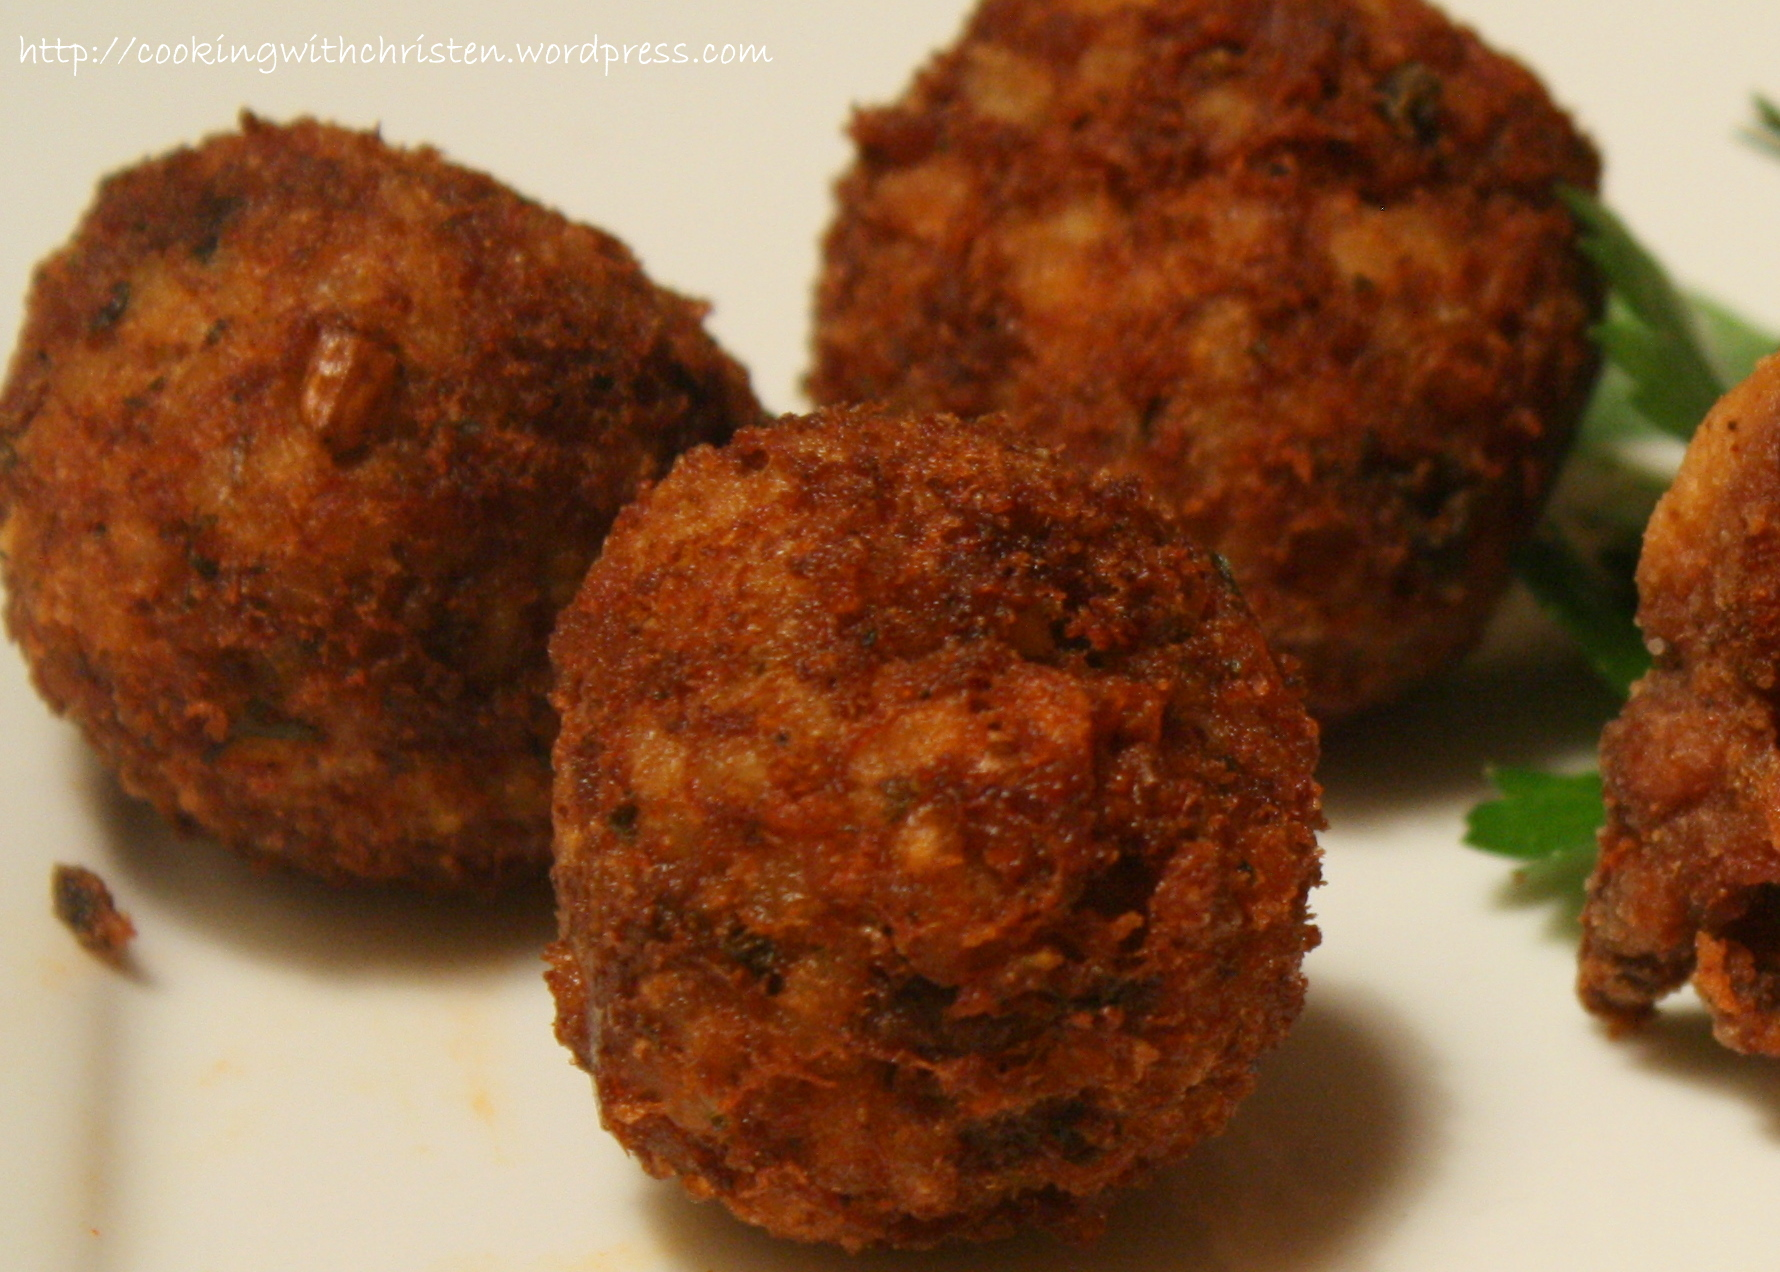 Boudin Balls | Cooking With Christen